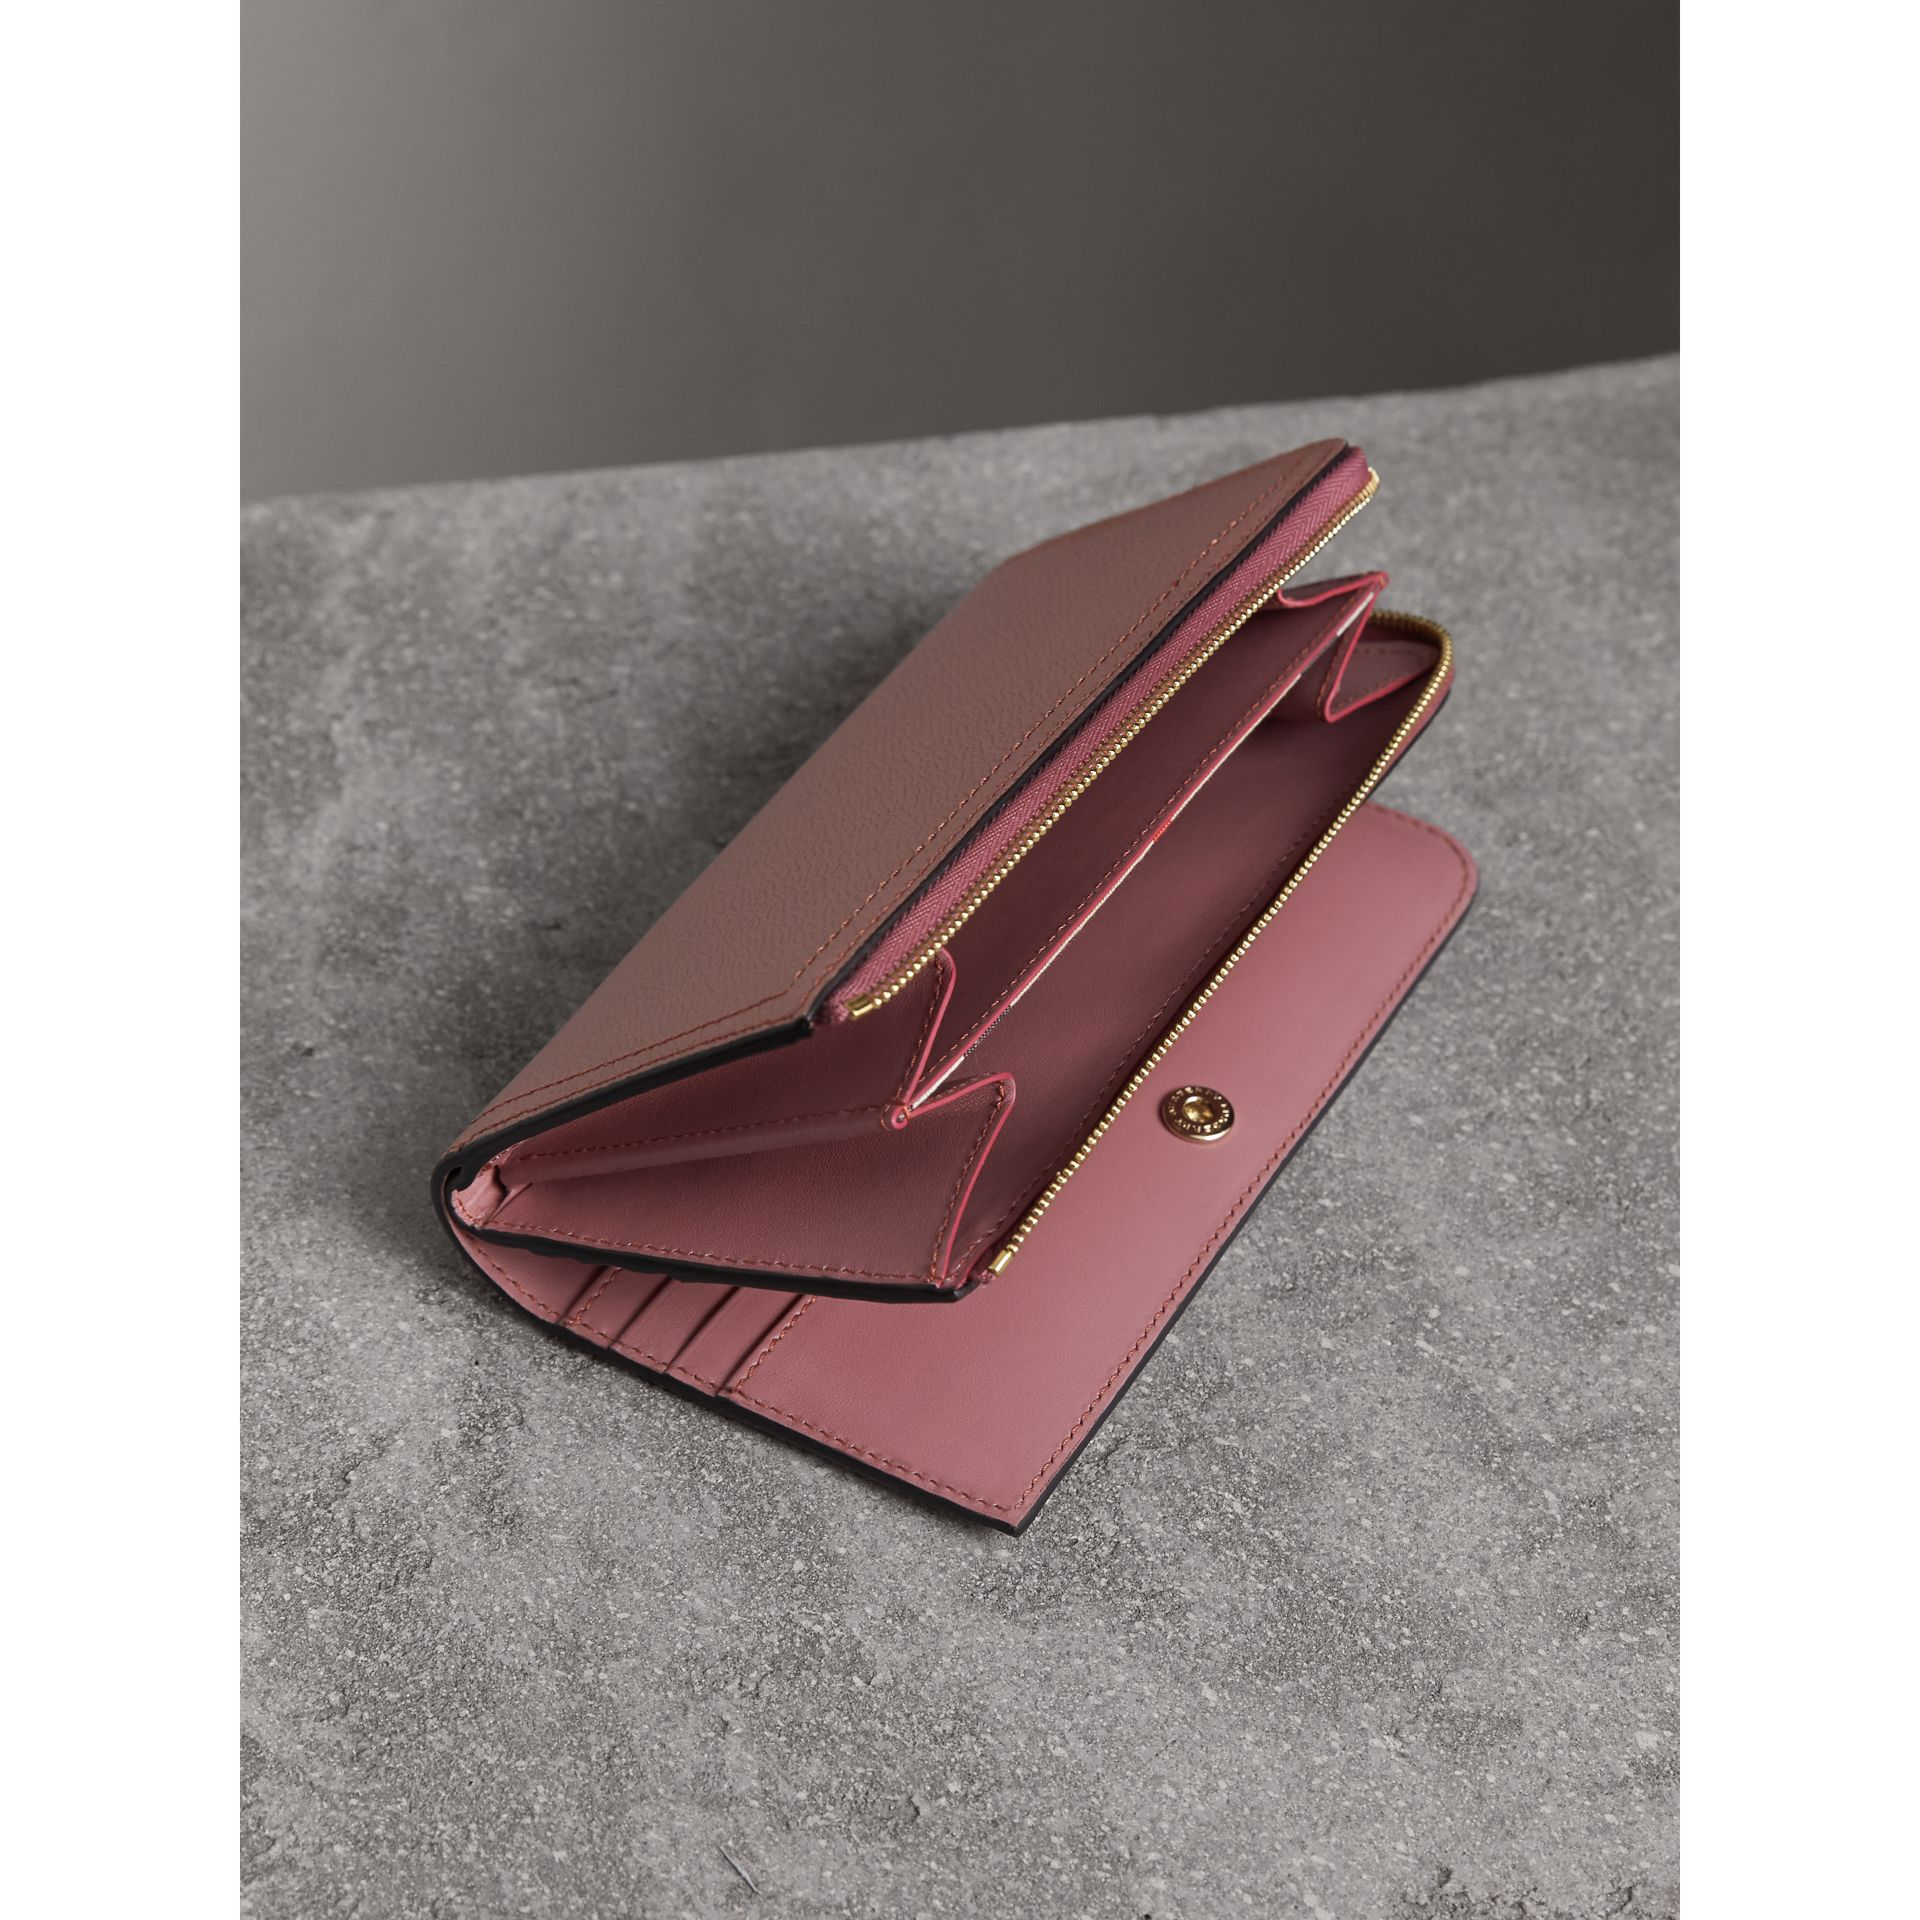 Grainy Leather Ziparound Wallet in Dusty Pink - Women | Burberry United States - gallery image 4